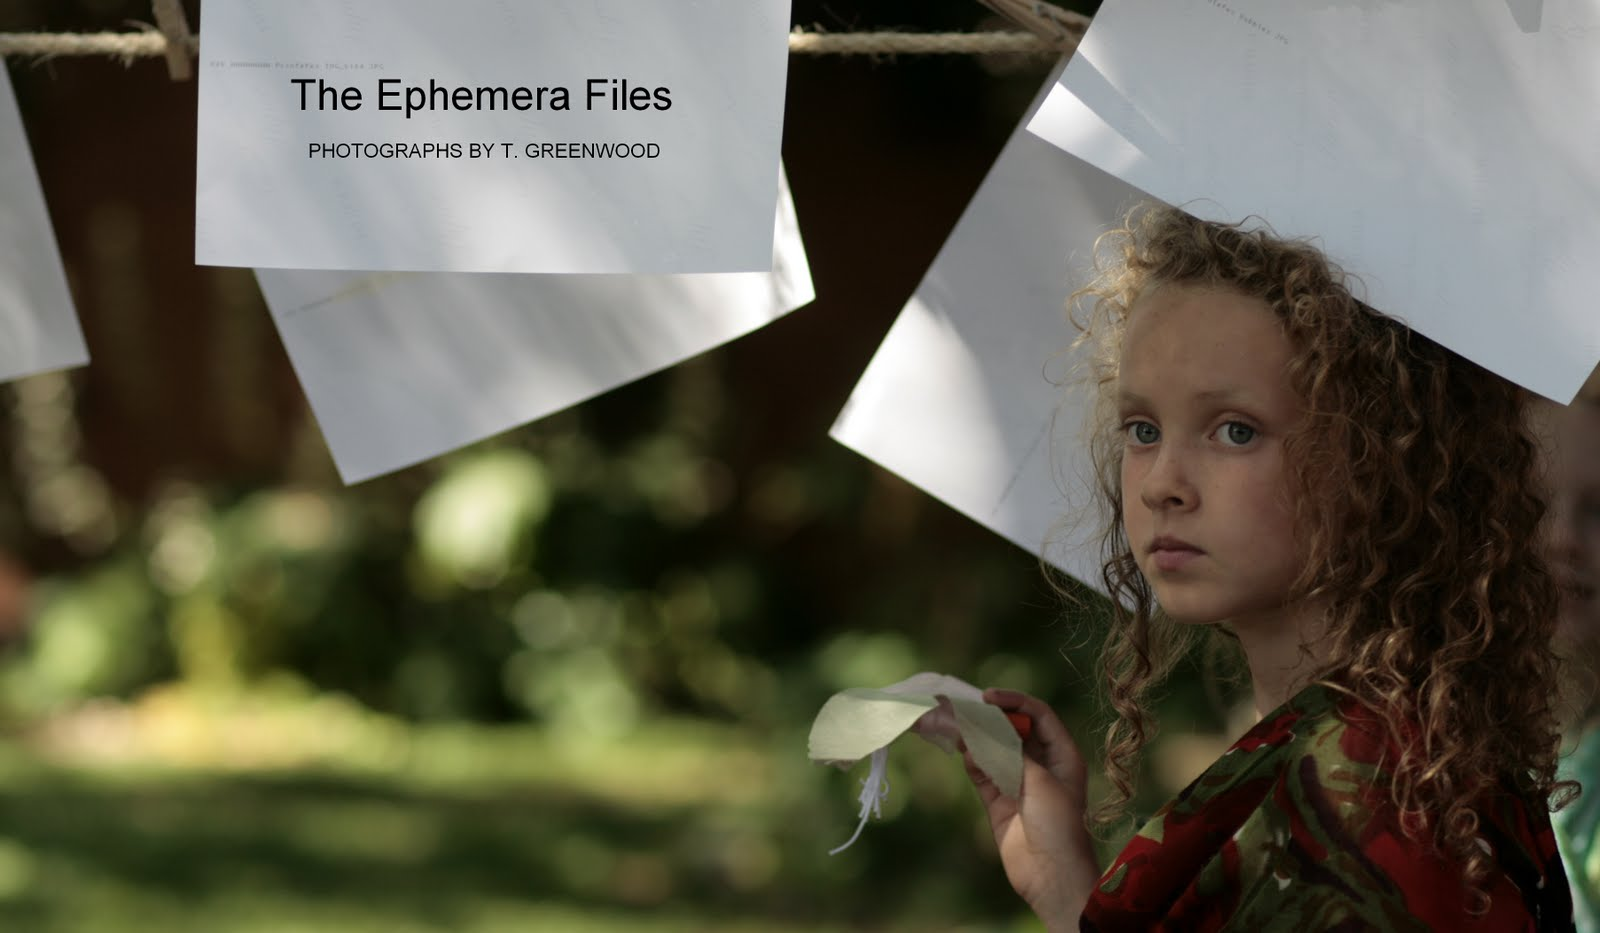 The Ephemera Files